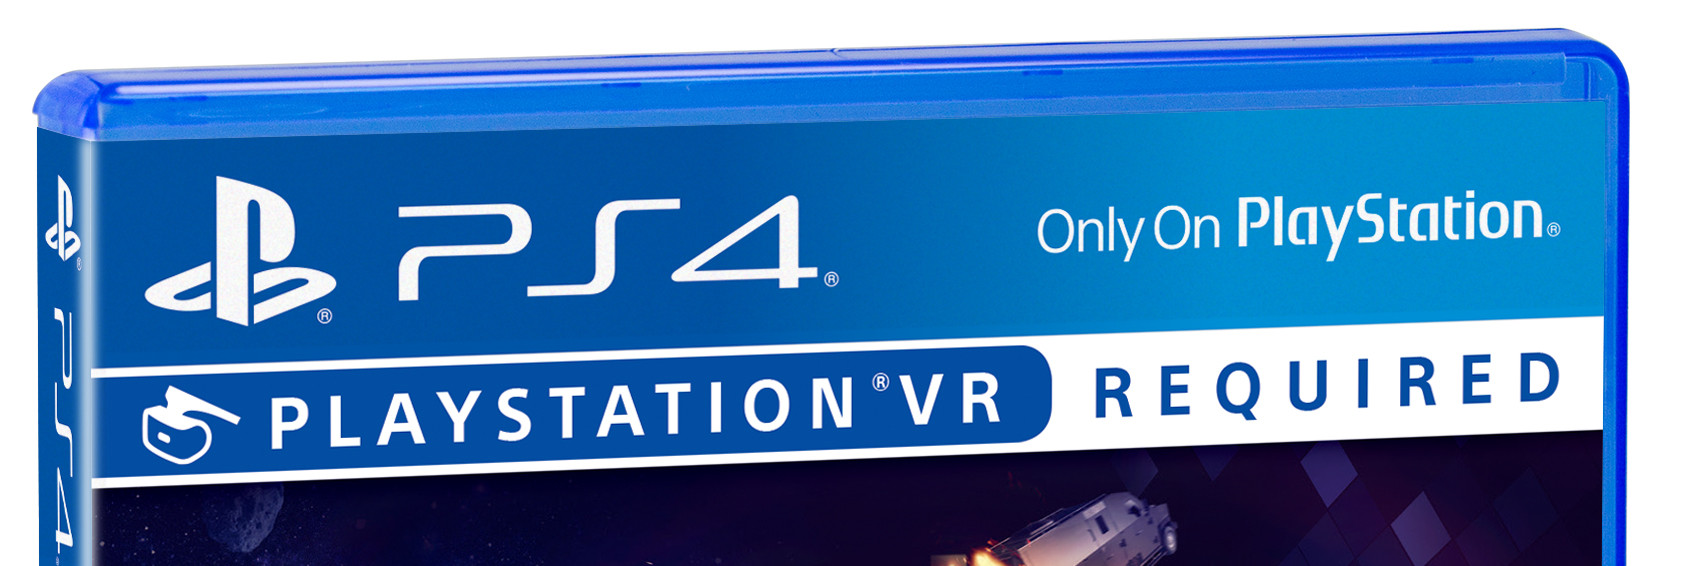 PlayStaion VR required